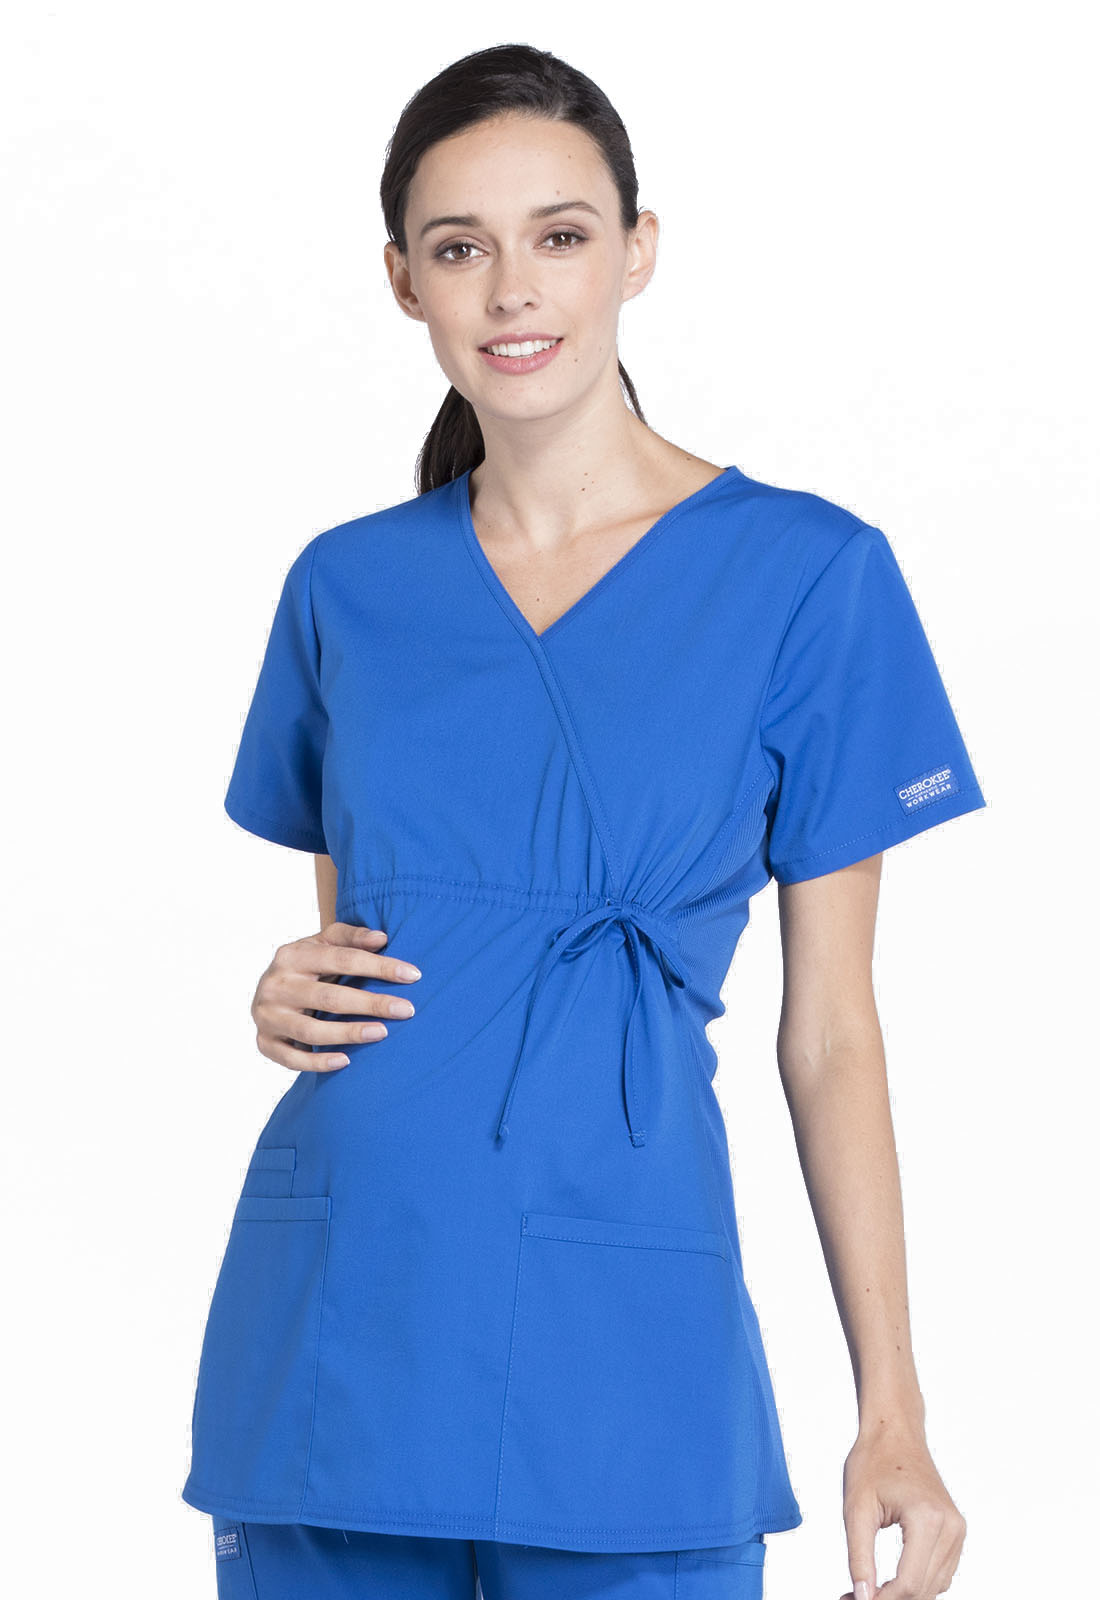 bf624c7c5bb WW Professionals Maternity Mock Wrap Top WW685-ROY from JMJ Medical ...